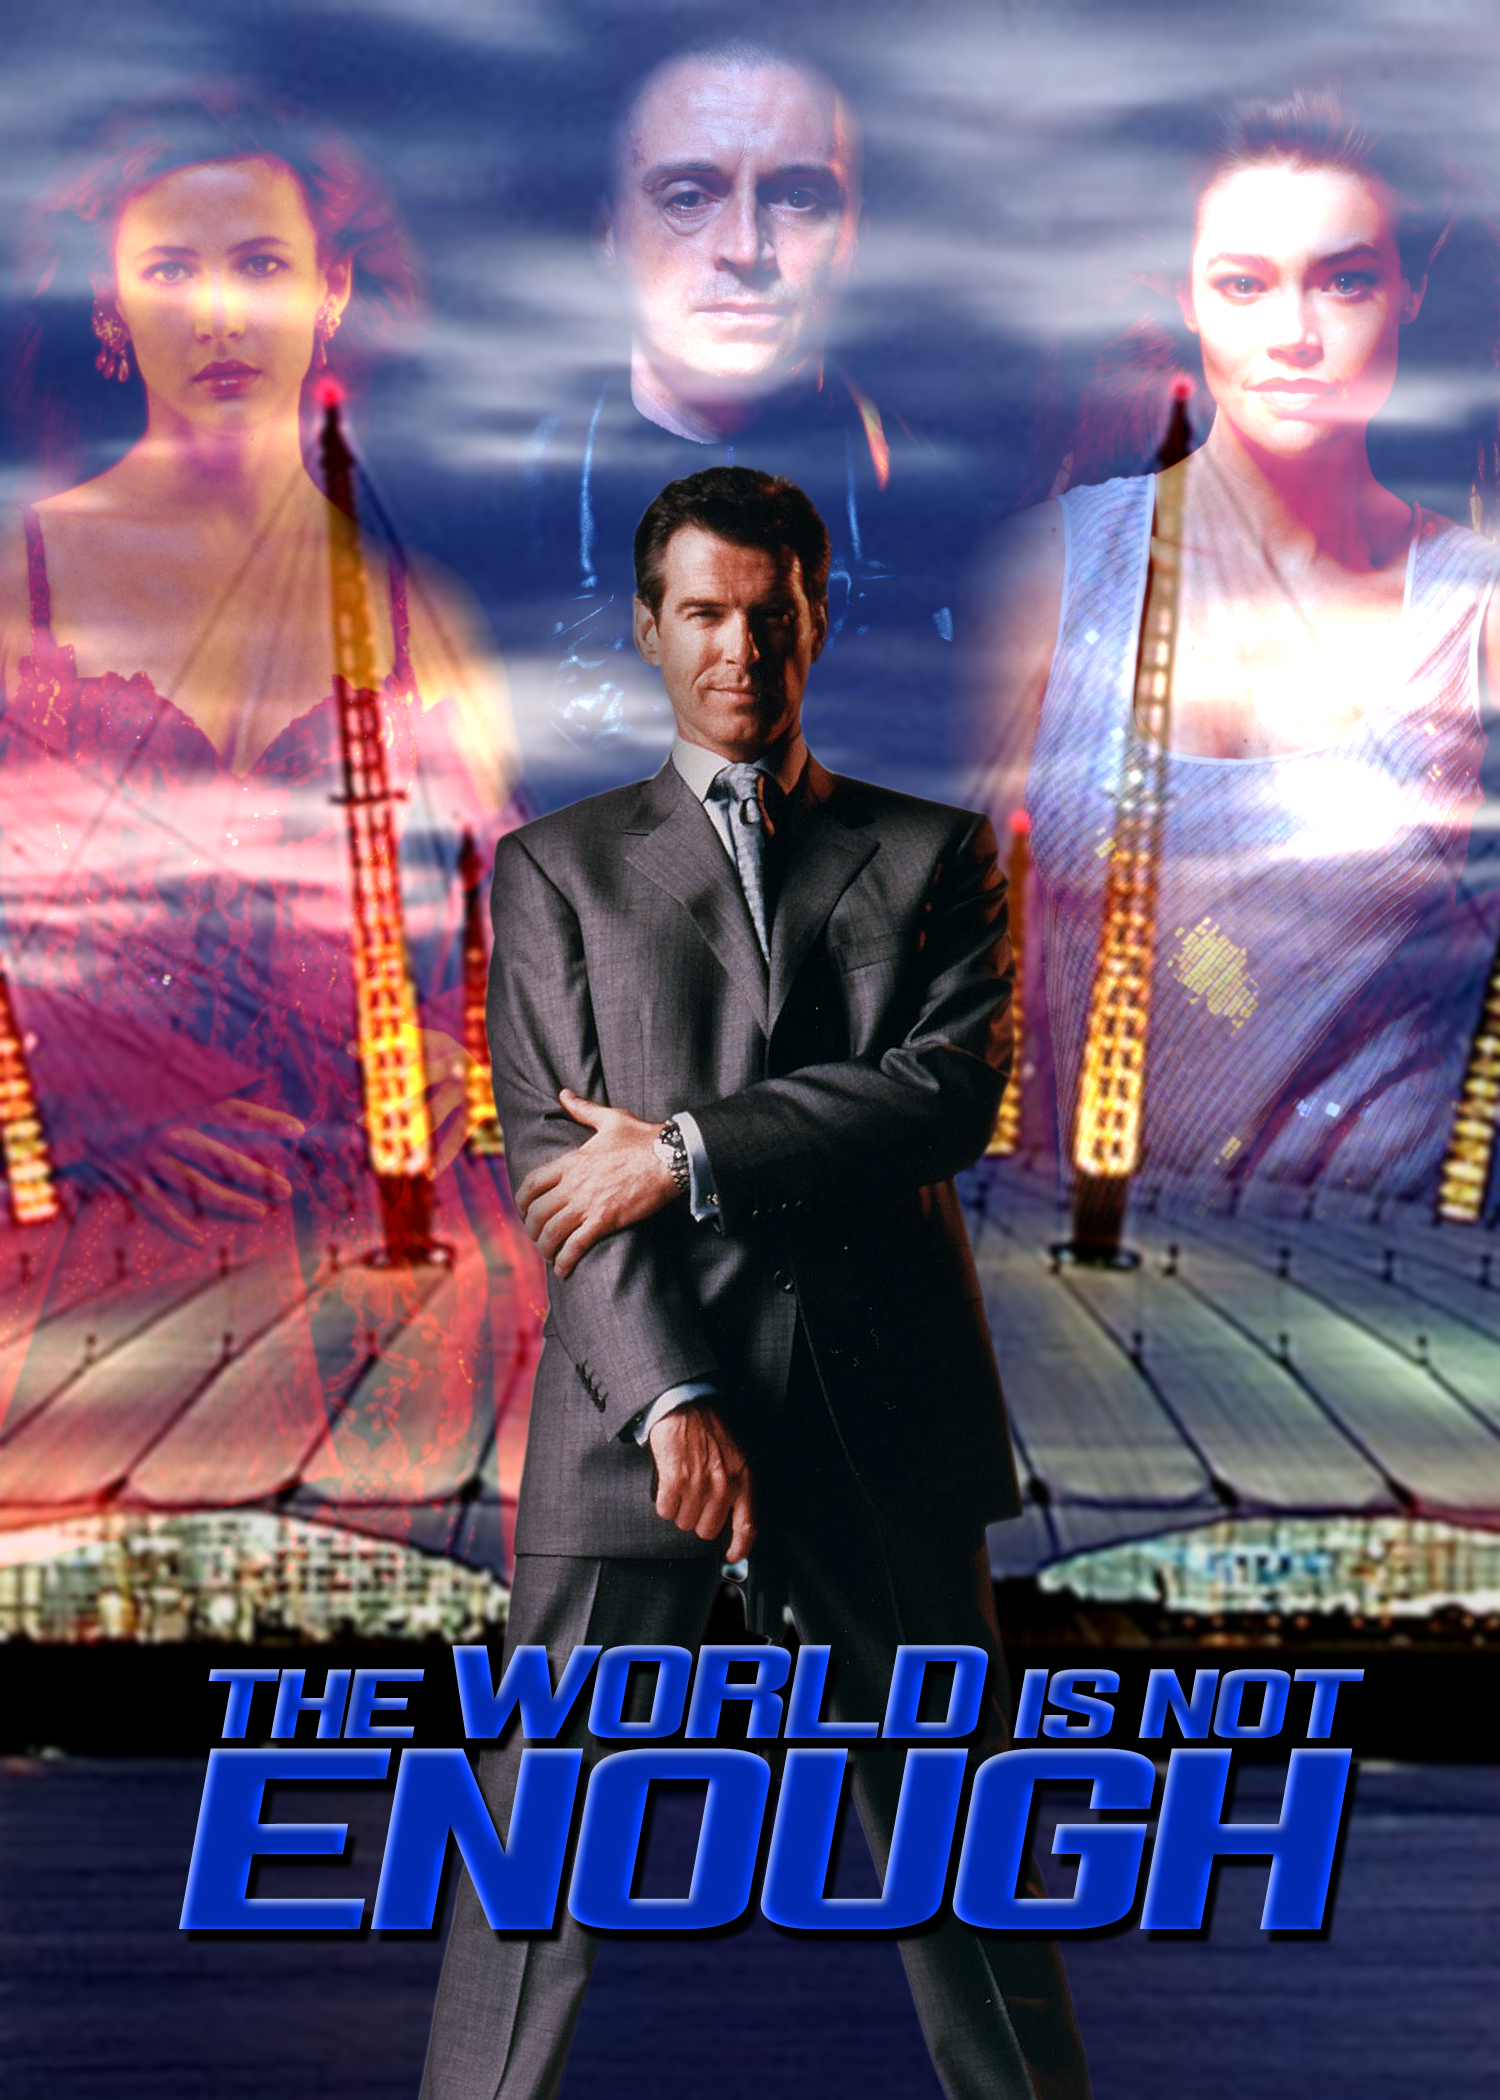 the_world_is_not_enough_poster_by_comandercool22-d68lddq.jpg